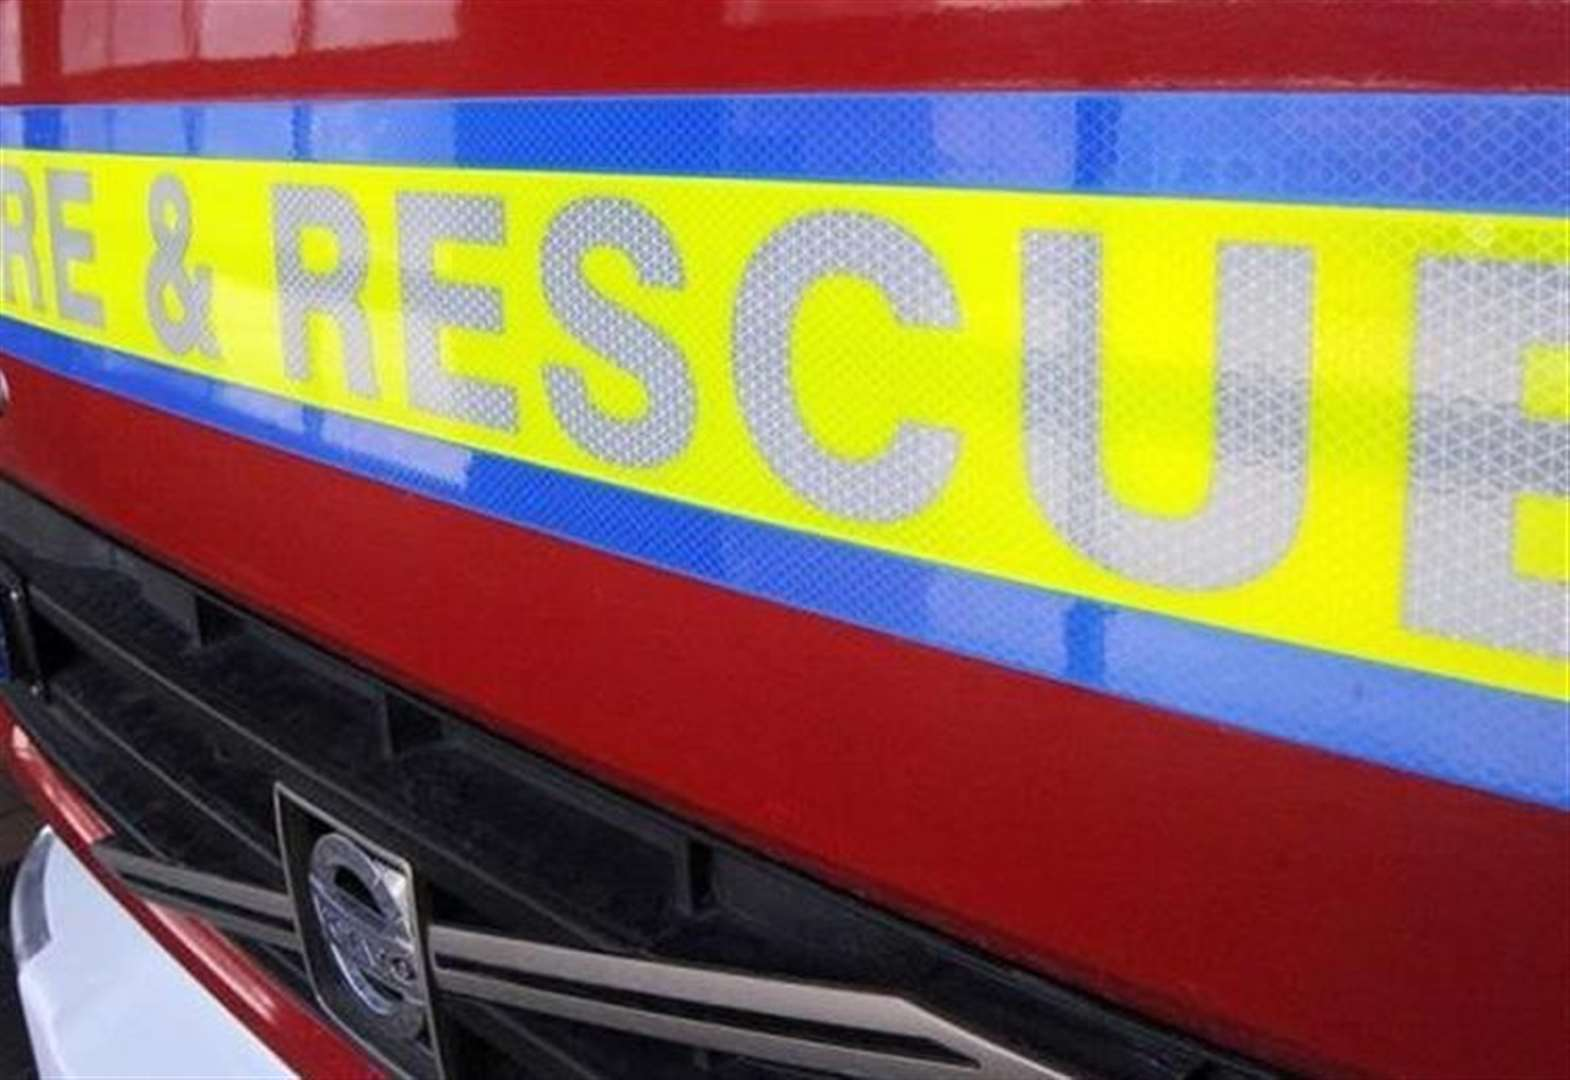 Dogs rescued from Wisbech house fire